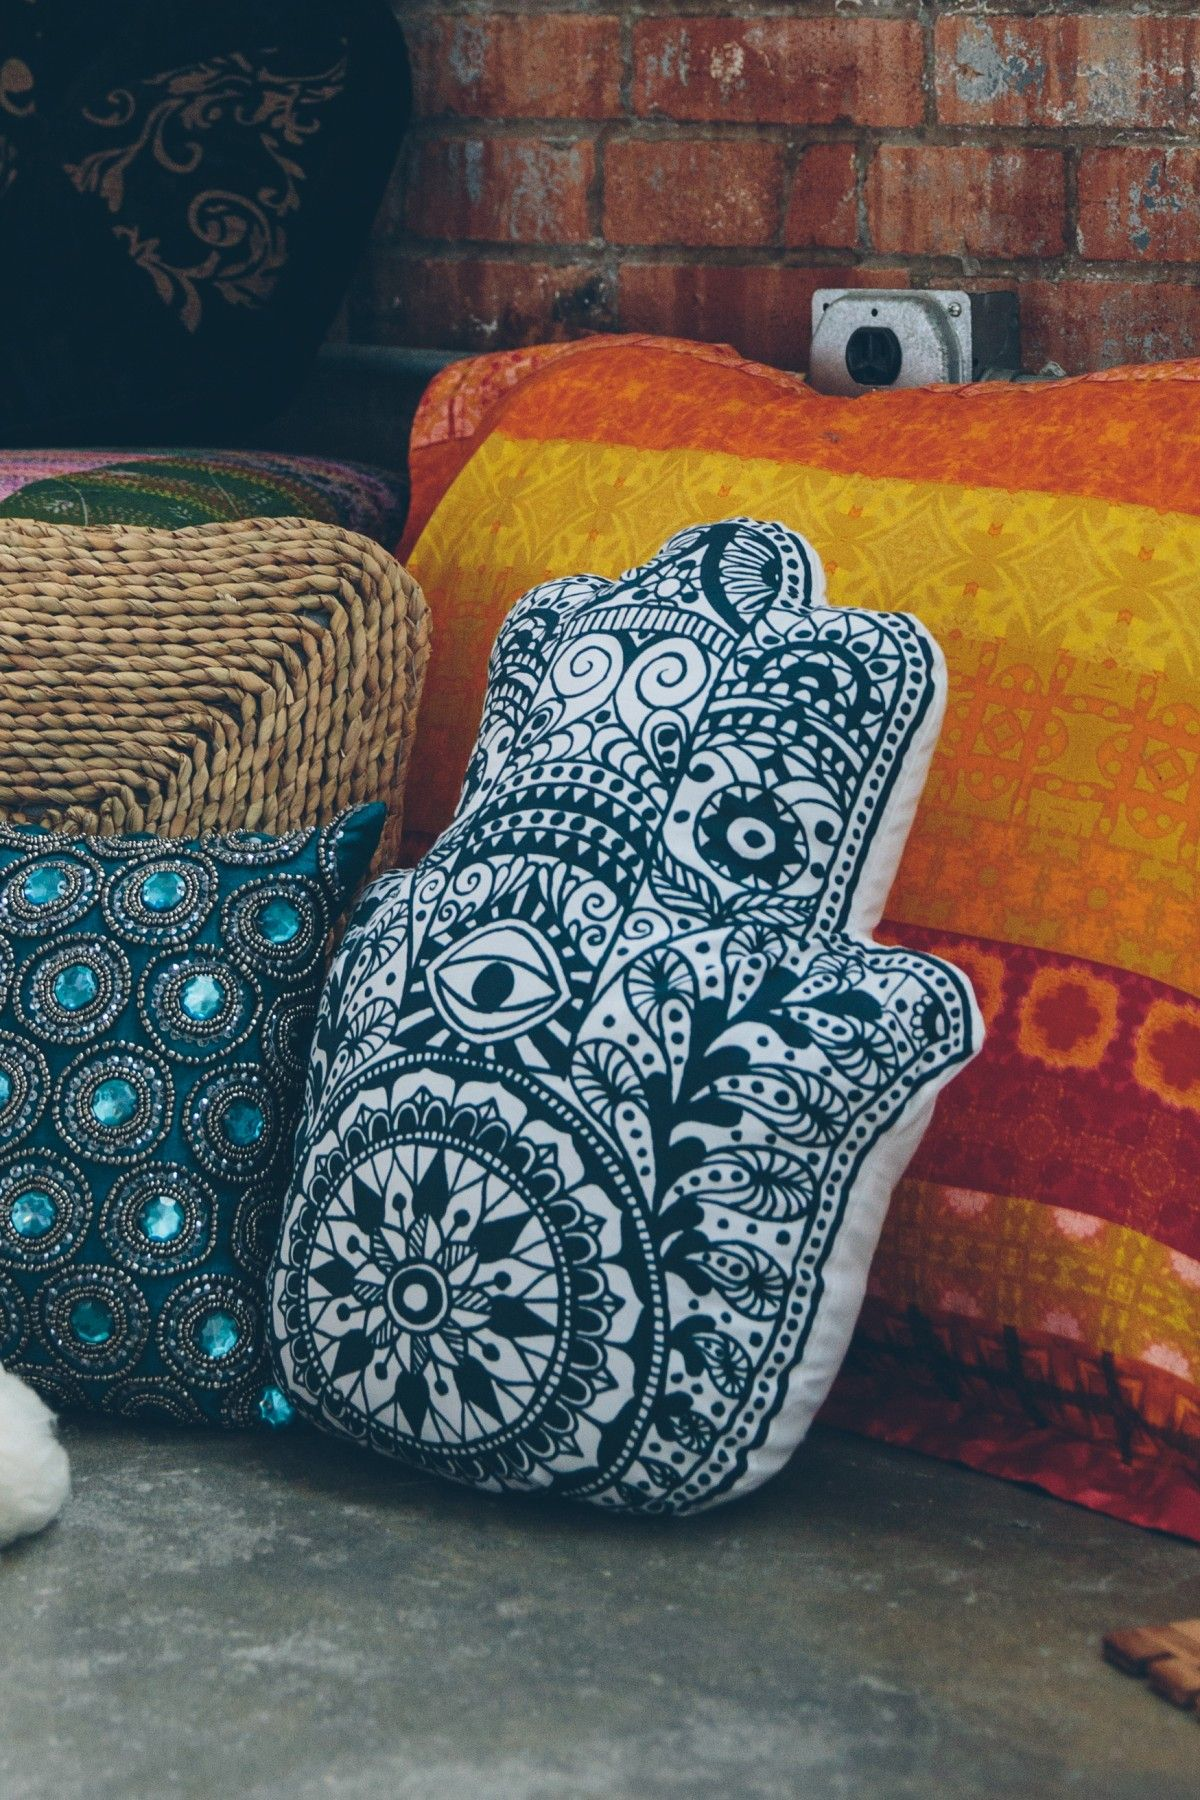 Black And White Hamsa Hand Pillow Home Decor Earthbound Trading Co